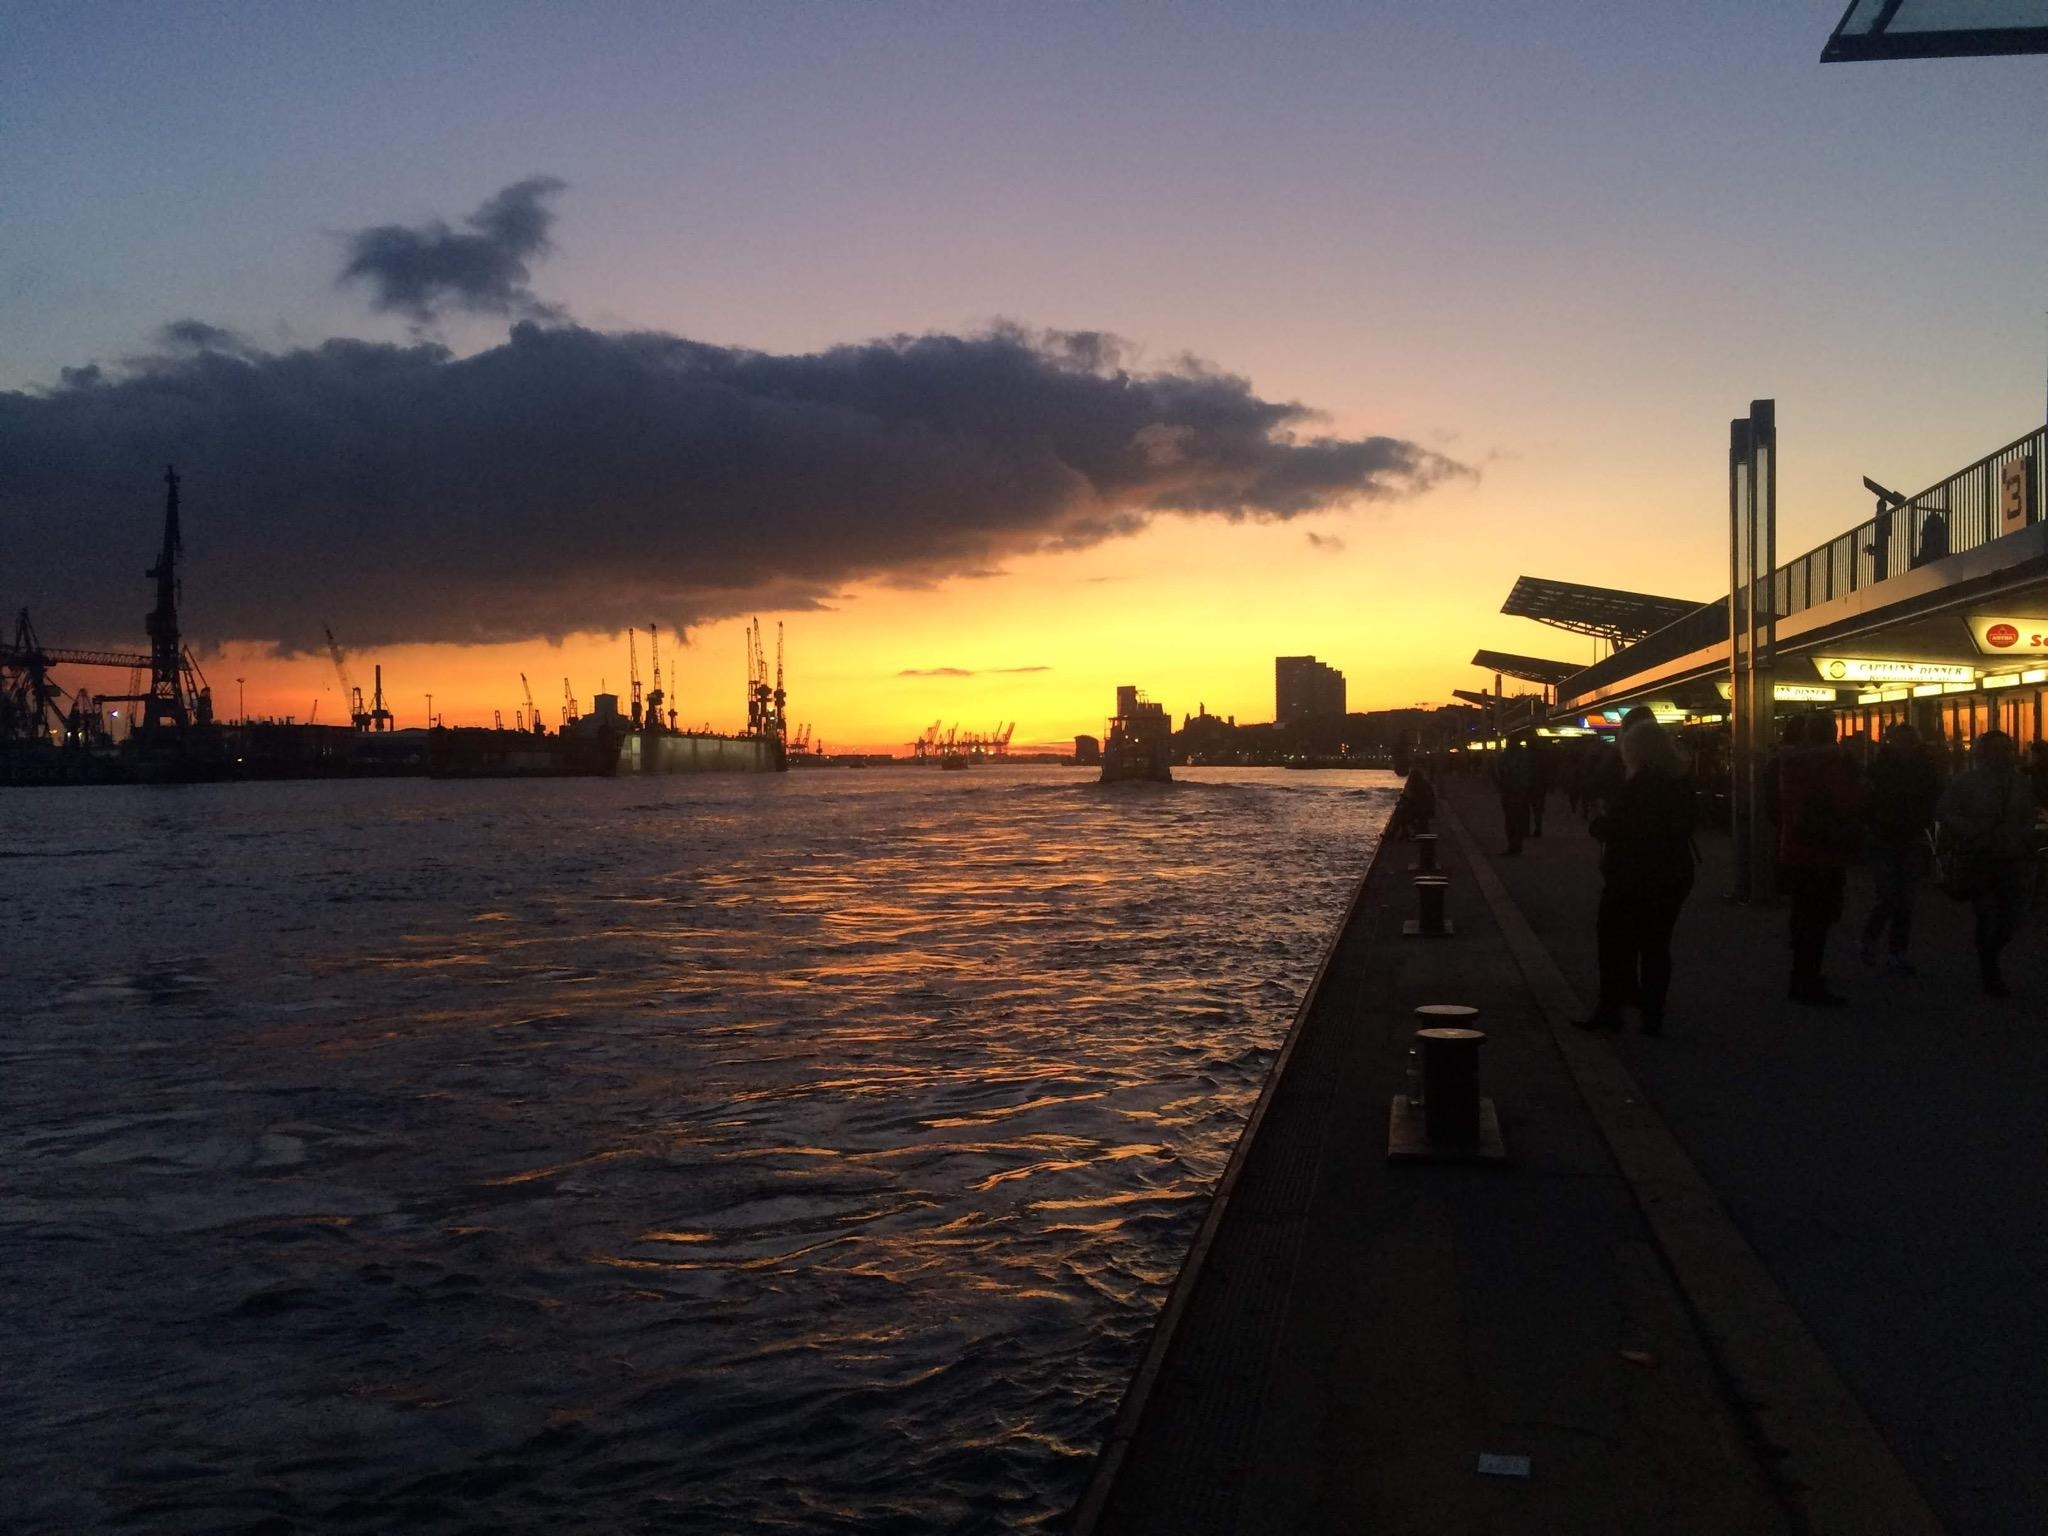 #travelchallenge #heimatentdecken #hamburg #sunset